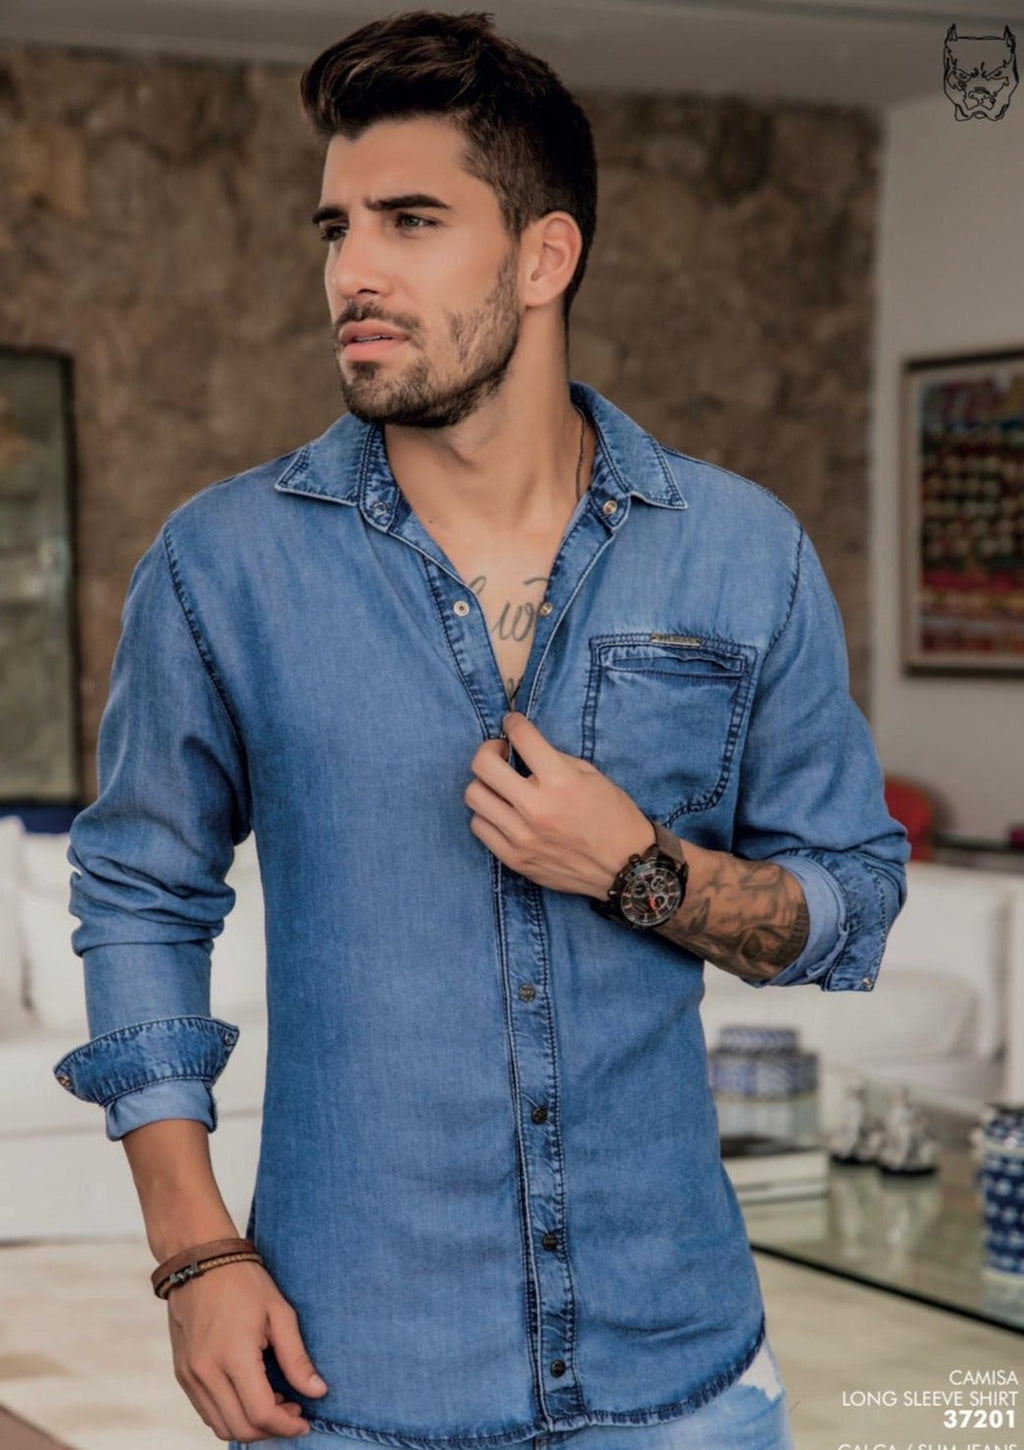 37201 Camisa Jeans PIT BULL